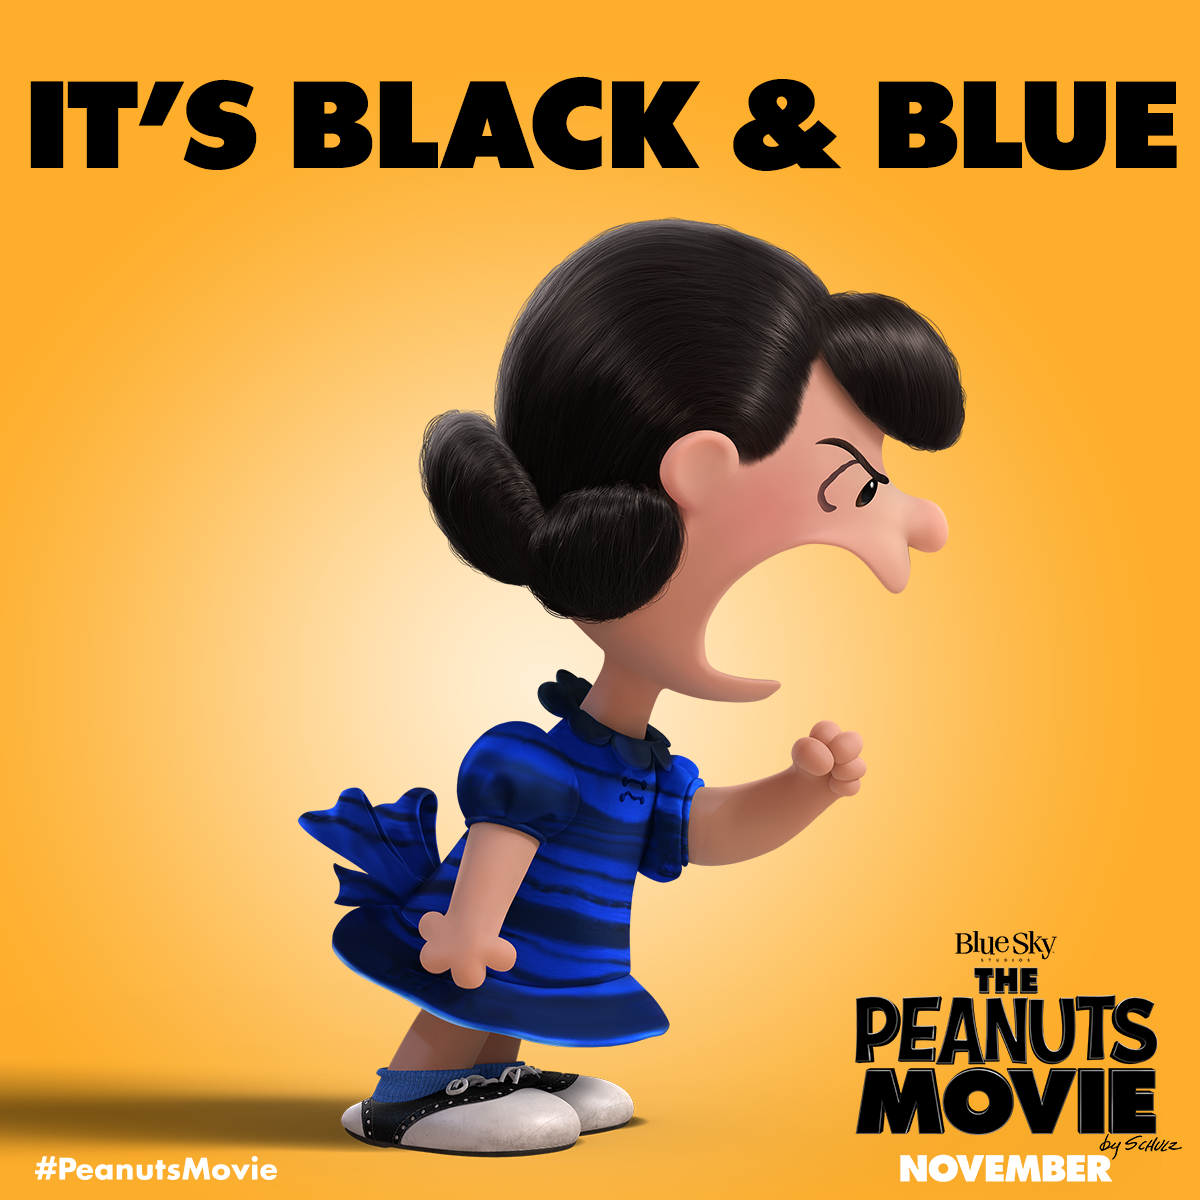 lucy peanuts 2015 related - photo #7